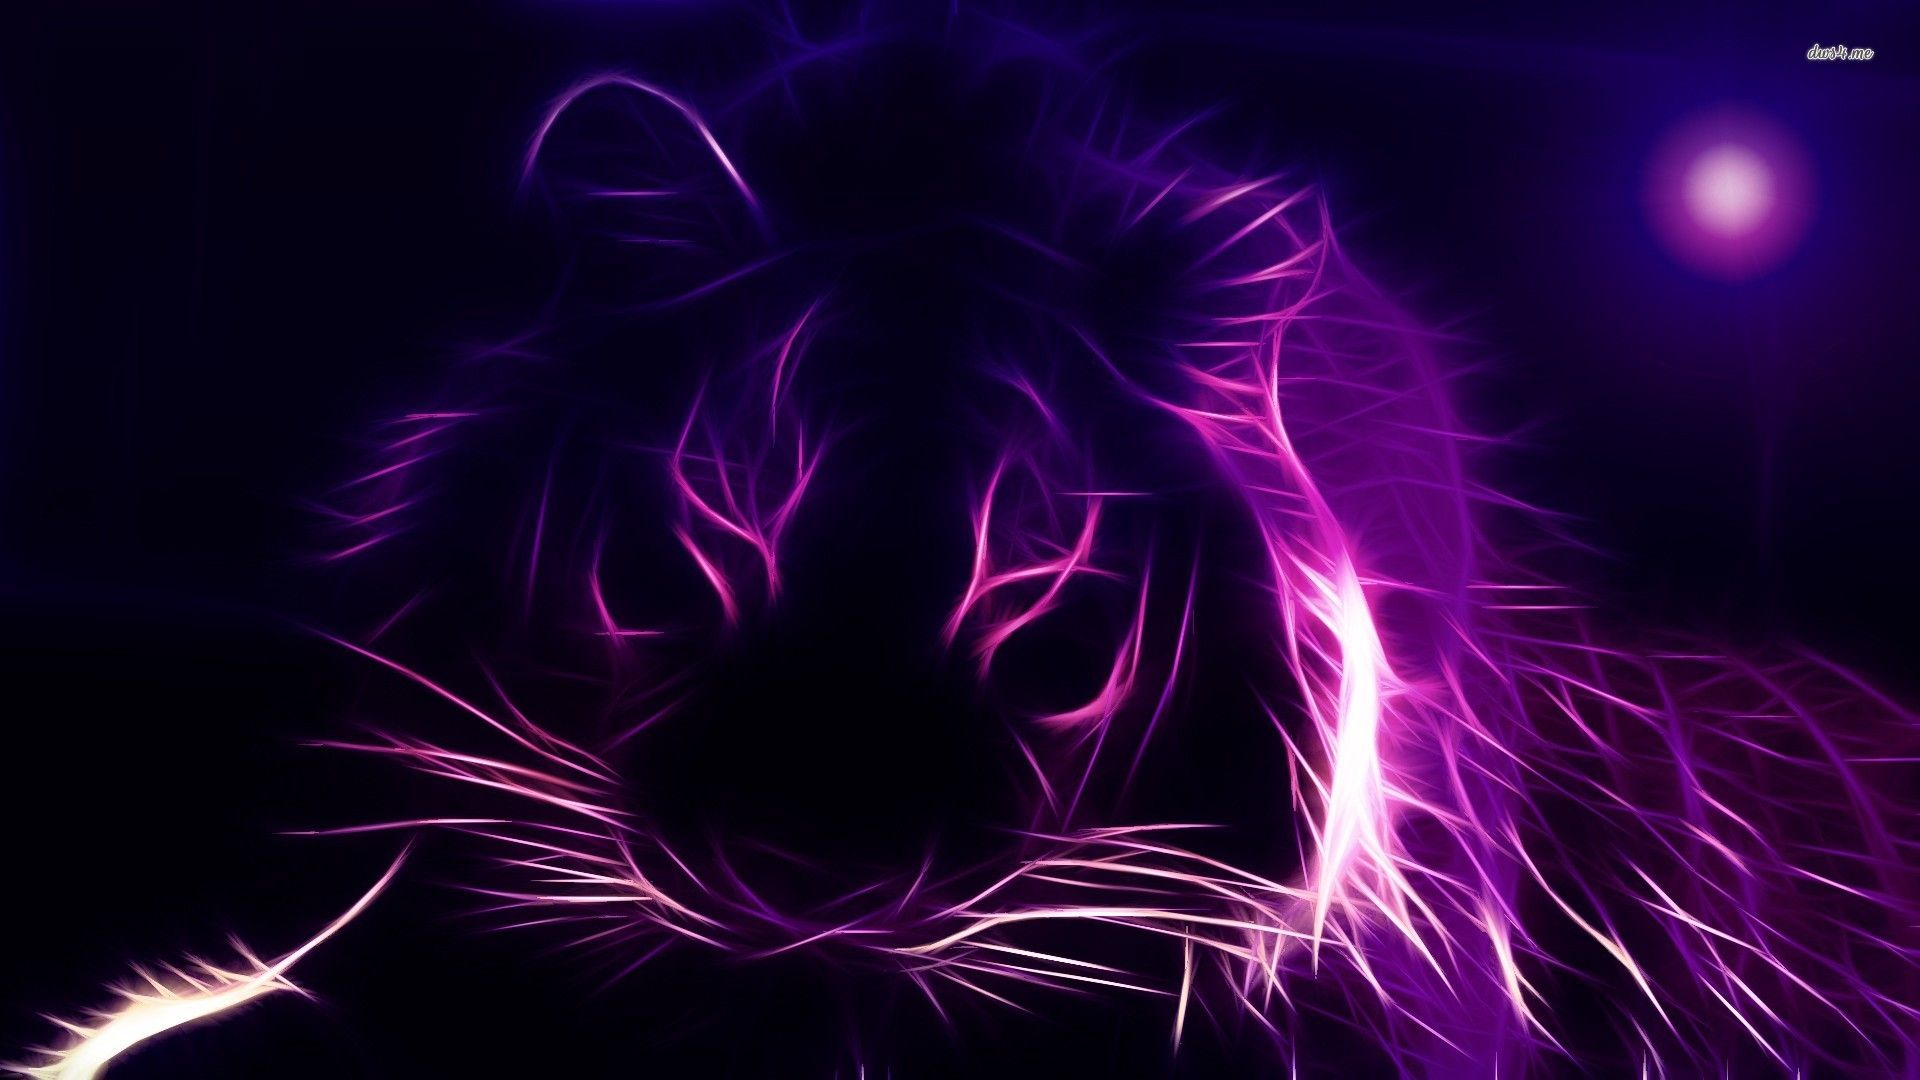 Outline drawings of a tiger 11541 glowing tiger outline 1920x1080 glowing white tiger glowing tiger wallpaper full hd x altavistaventures Choice Image